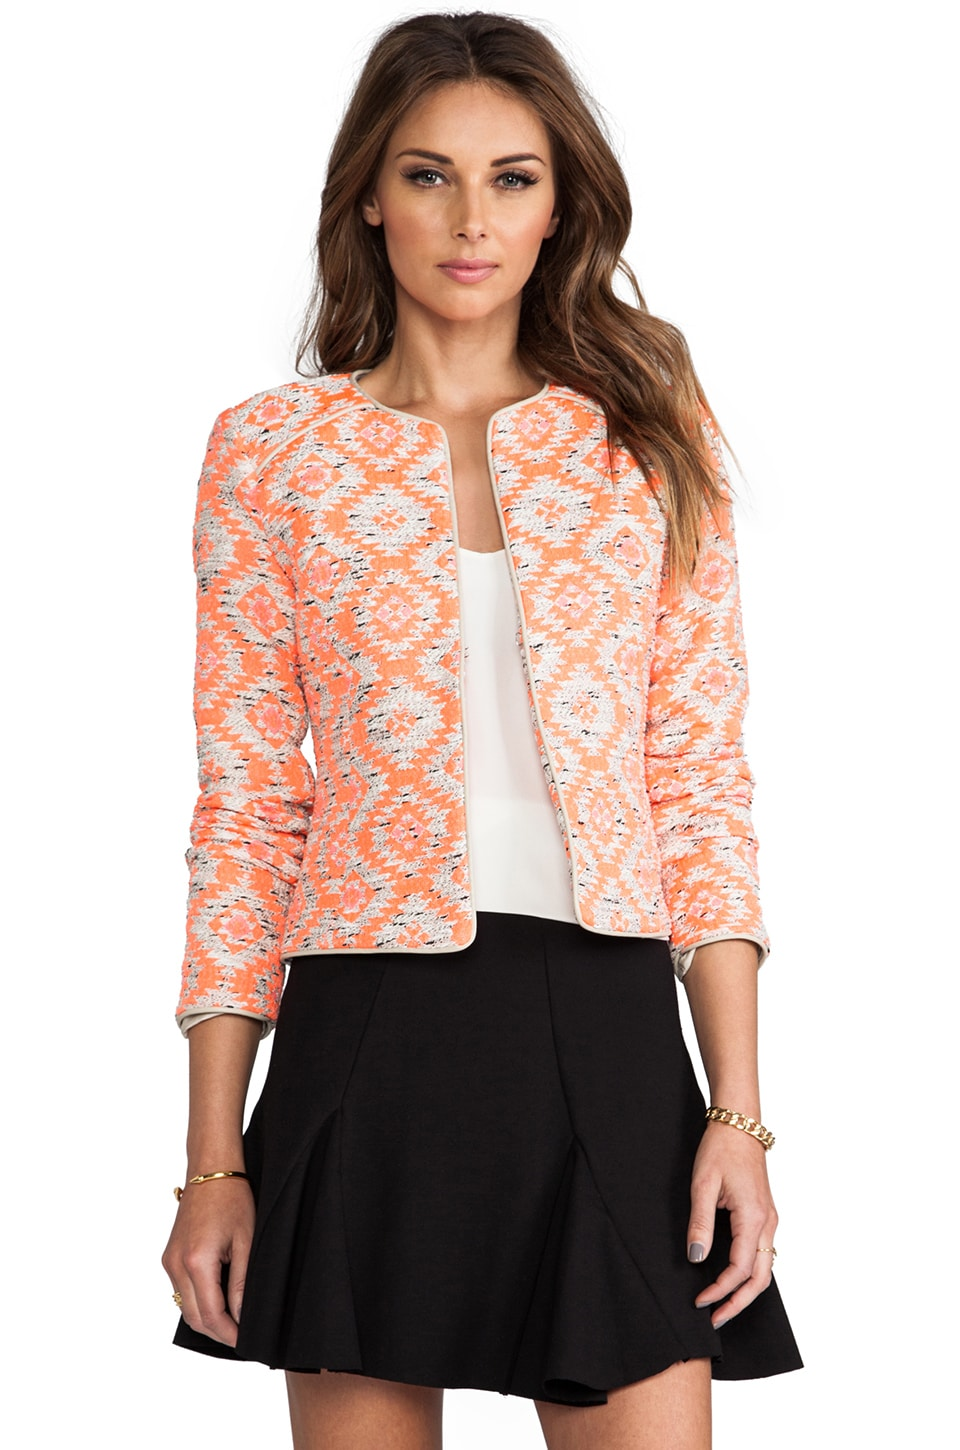 Nanette Lepore Great Plains Jacket in Coral